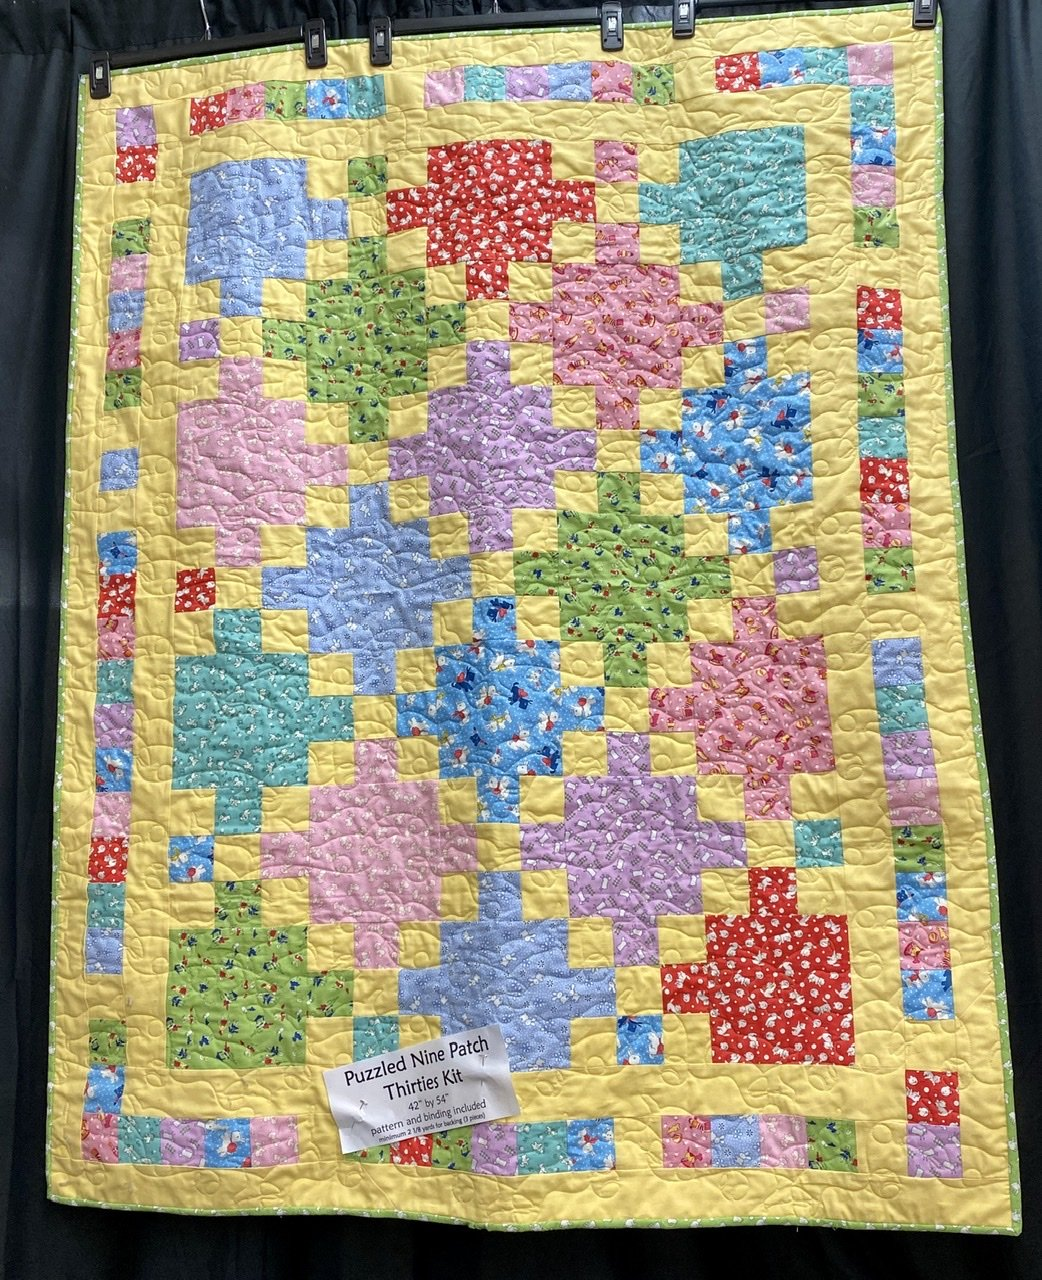 Puzzled Nine Patch Thirties Kit